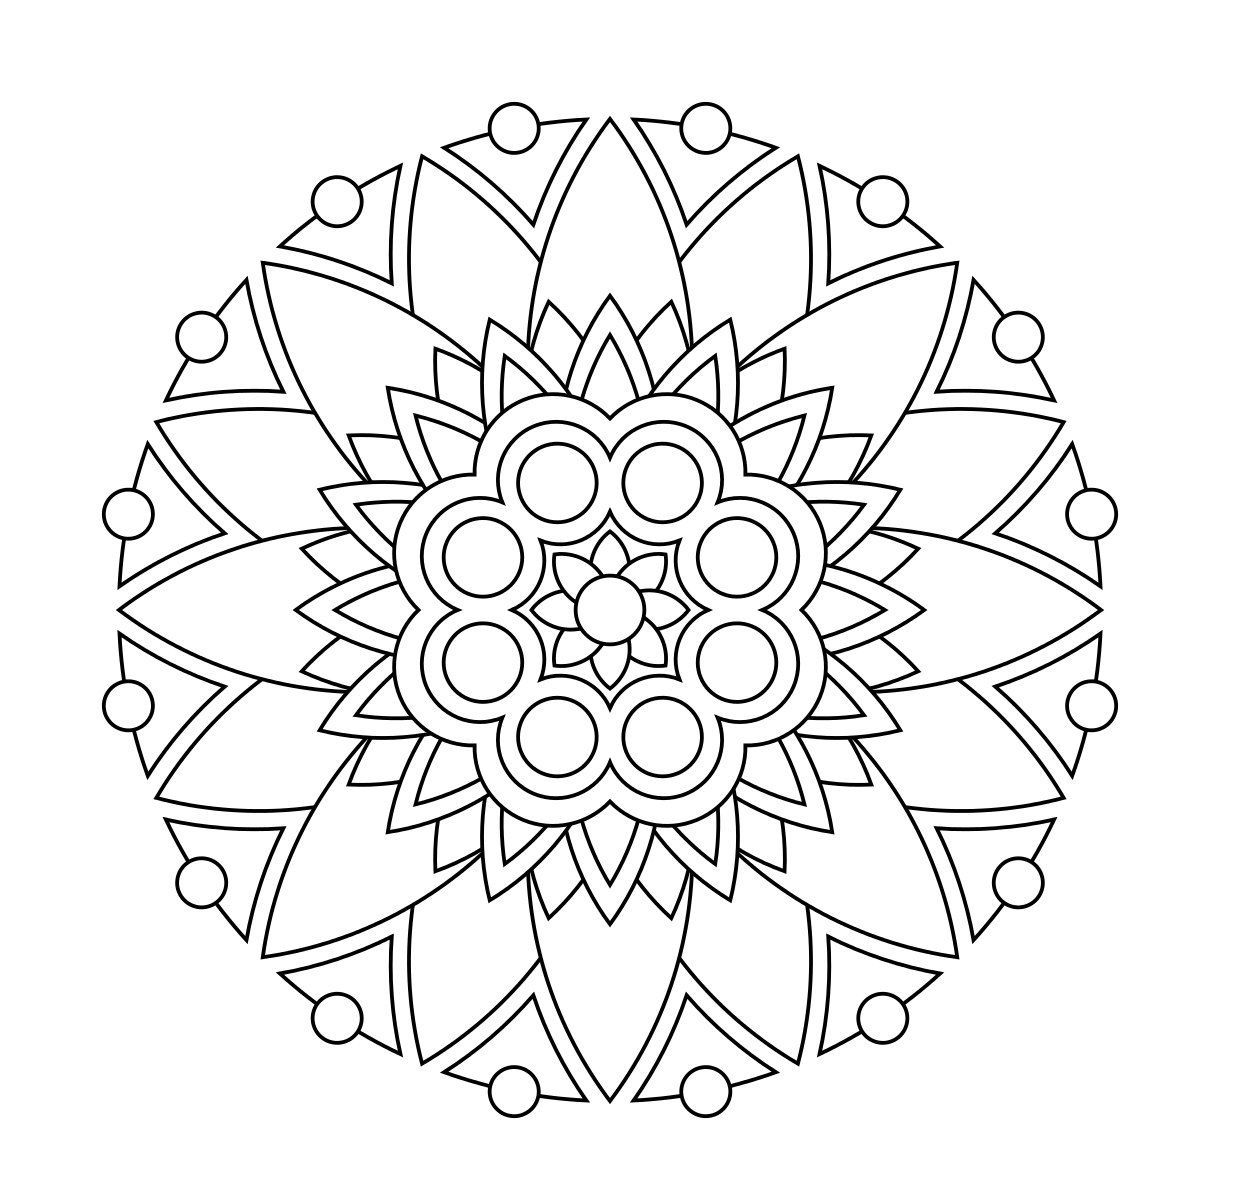 These Printable Mandala And Abstract Coloring Pages Relieve Stress And Help You Meditate Mandala Coloring Abstract Coloring Pages Mandala Coloring Pages